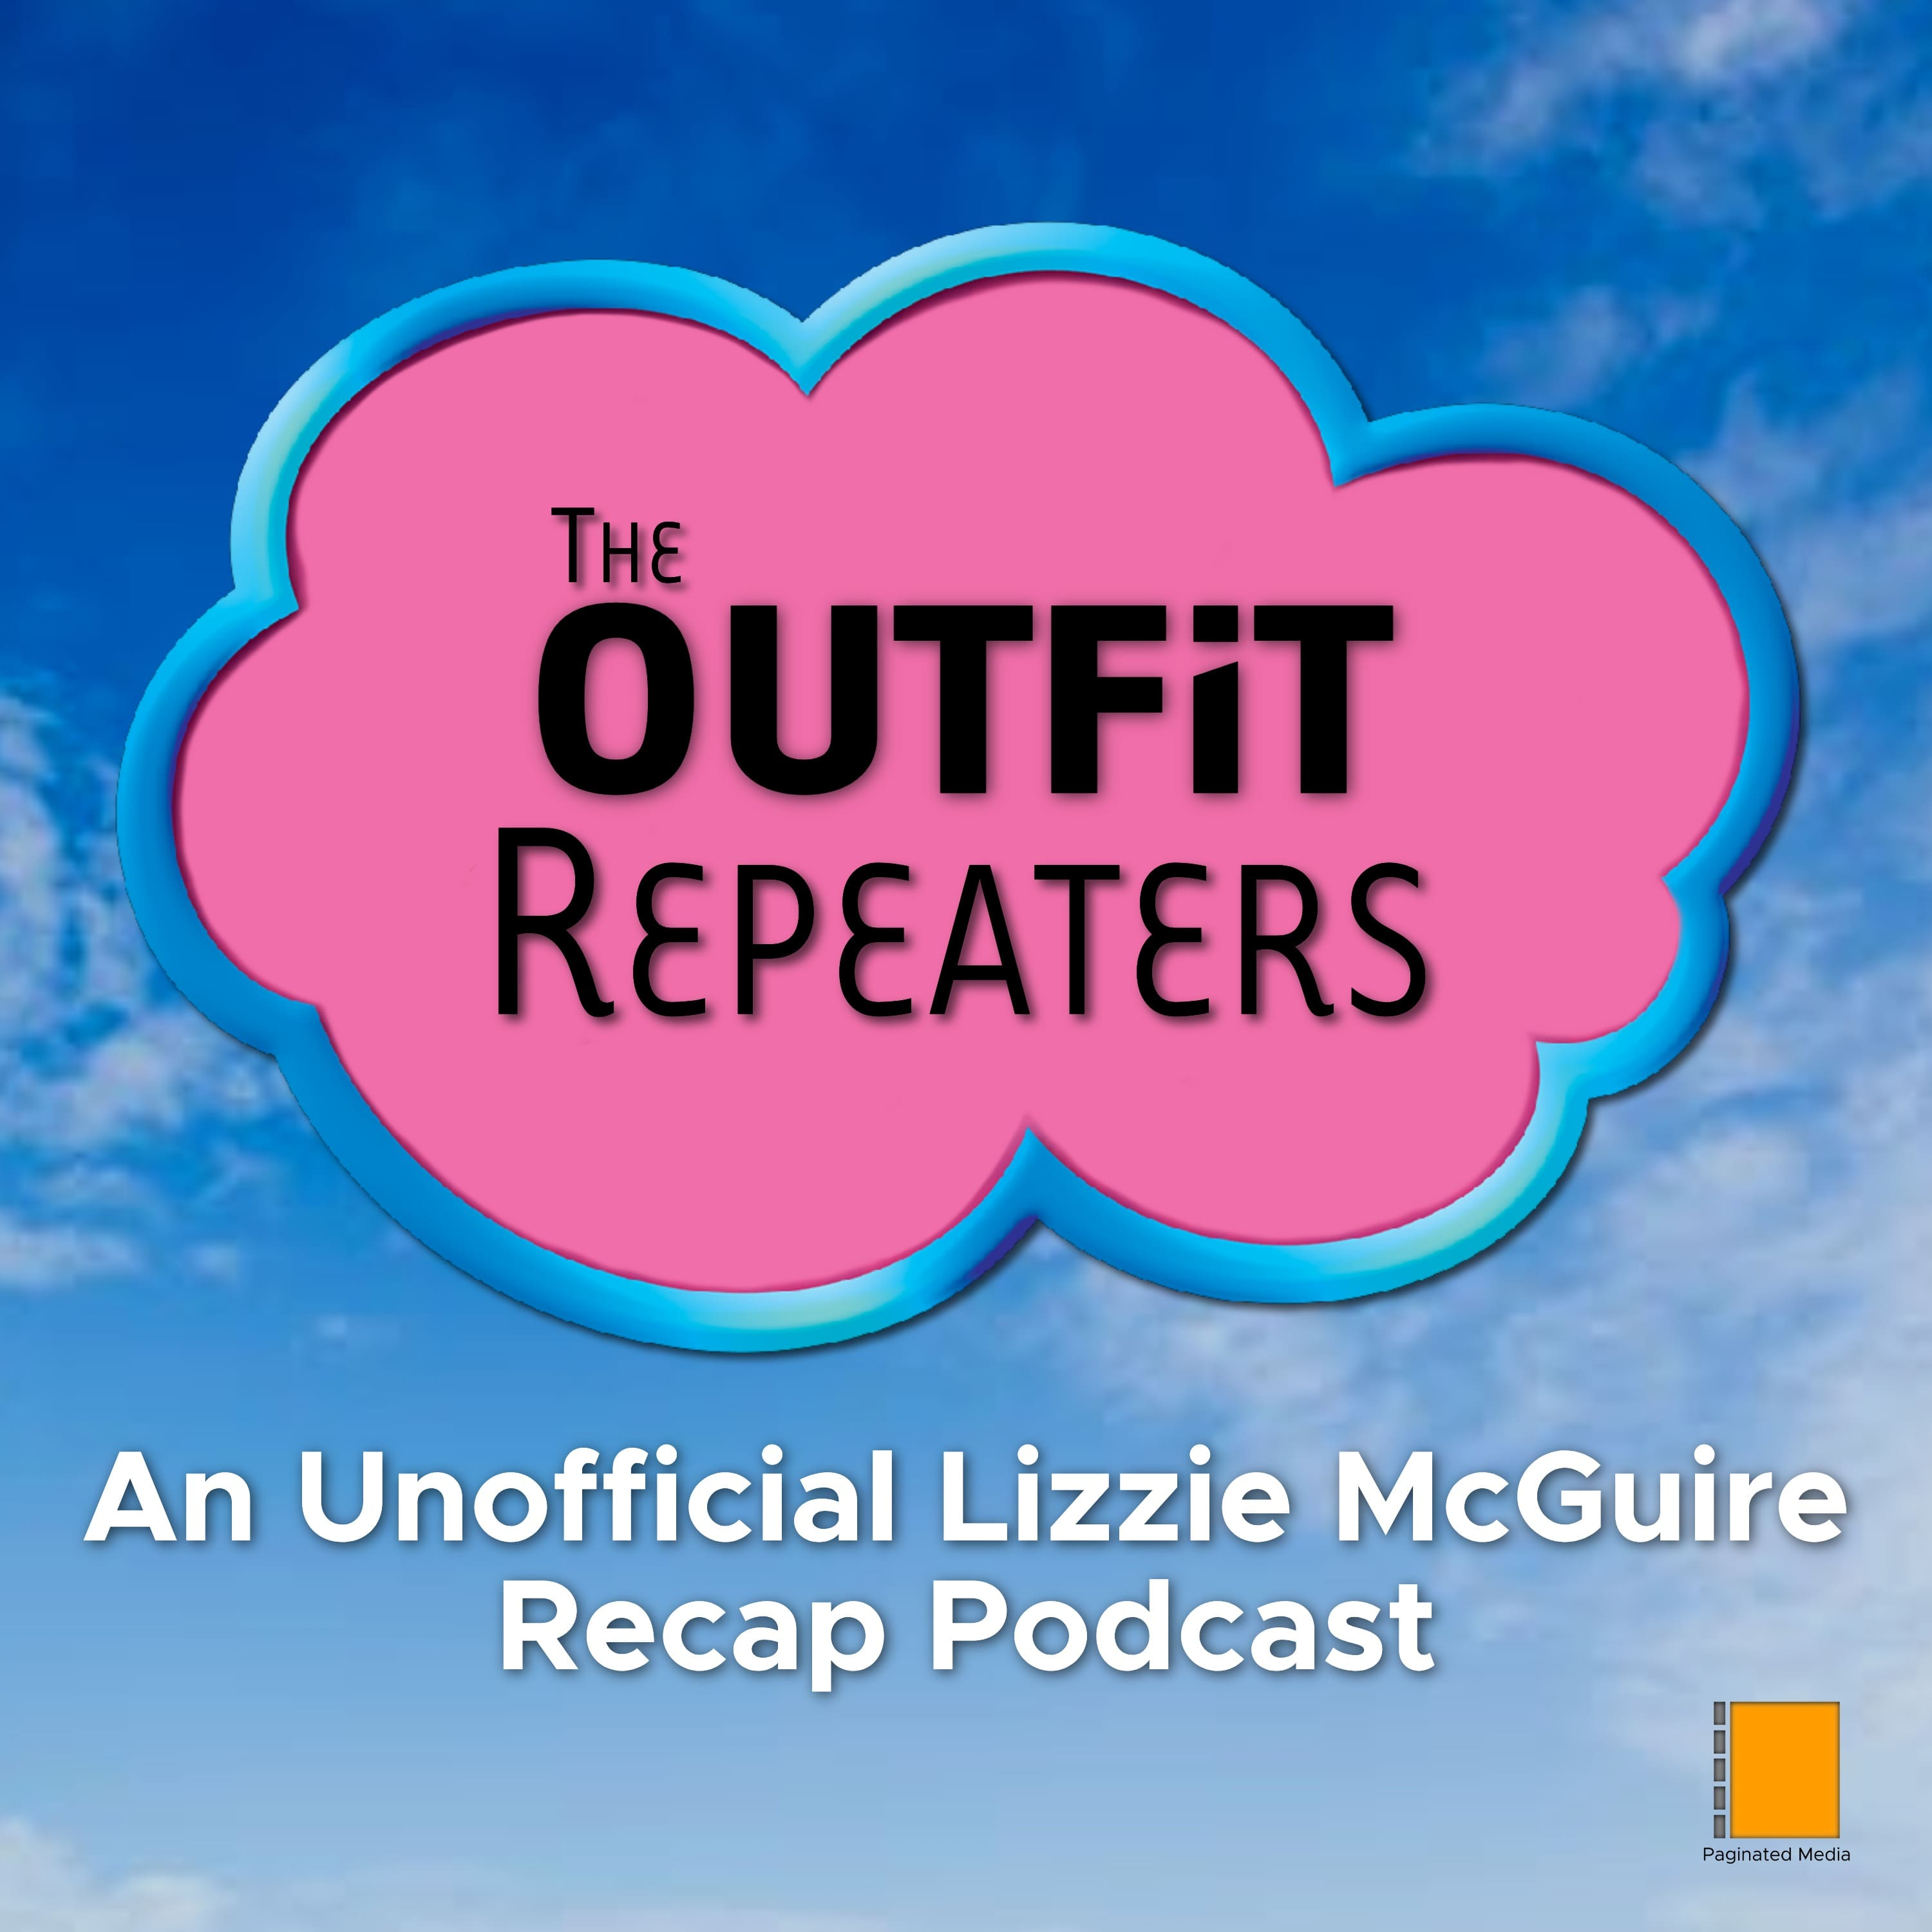 Artwork for podcast The Outfit Repeaters